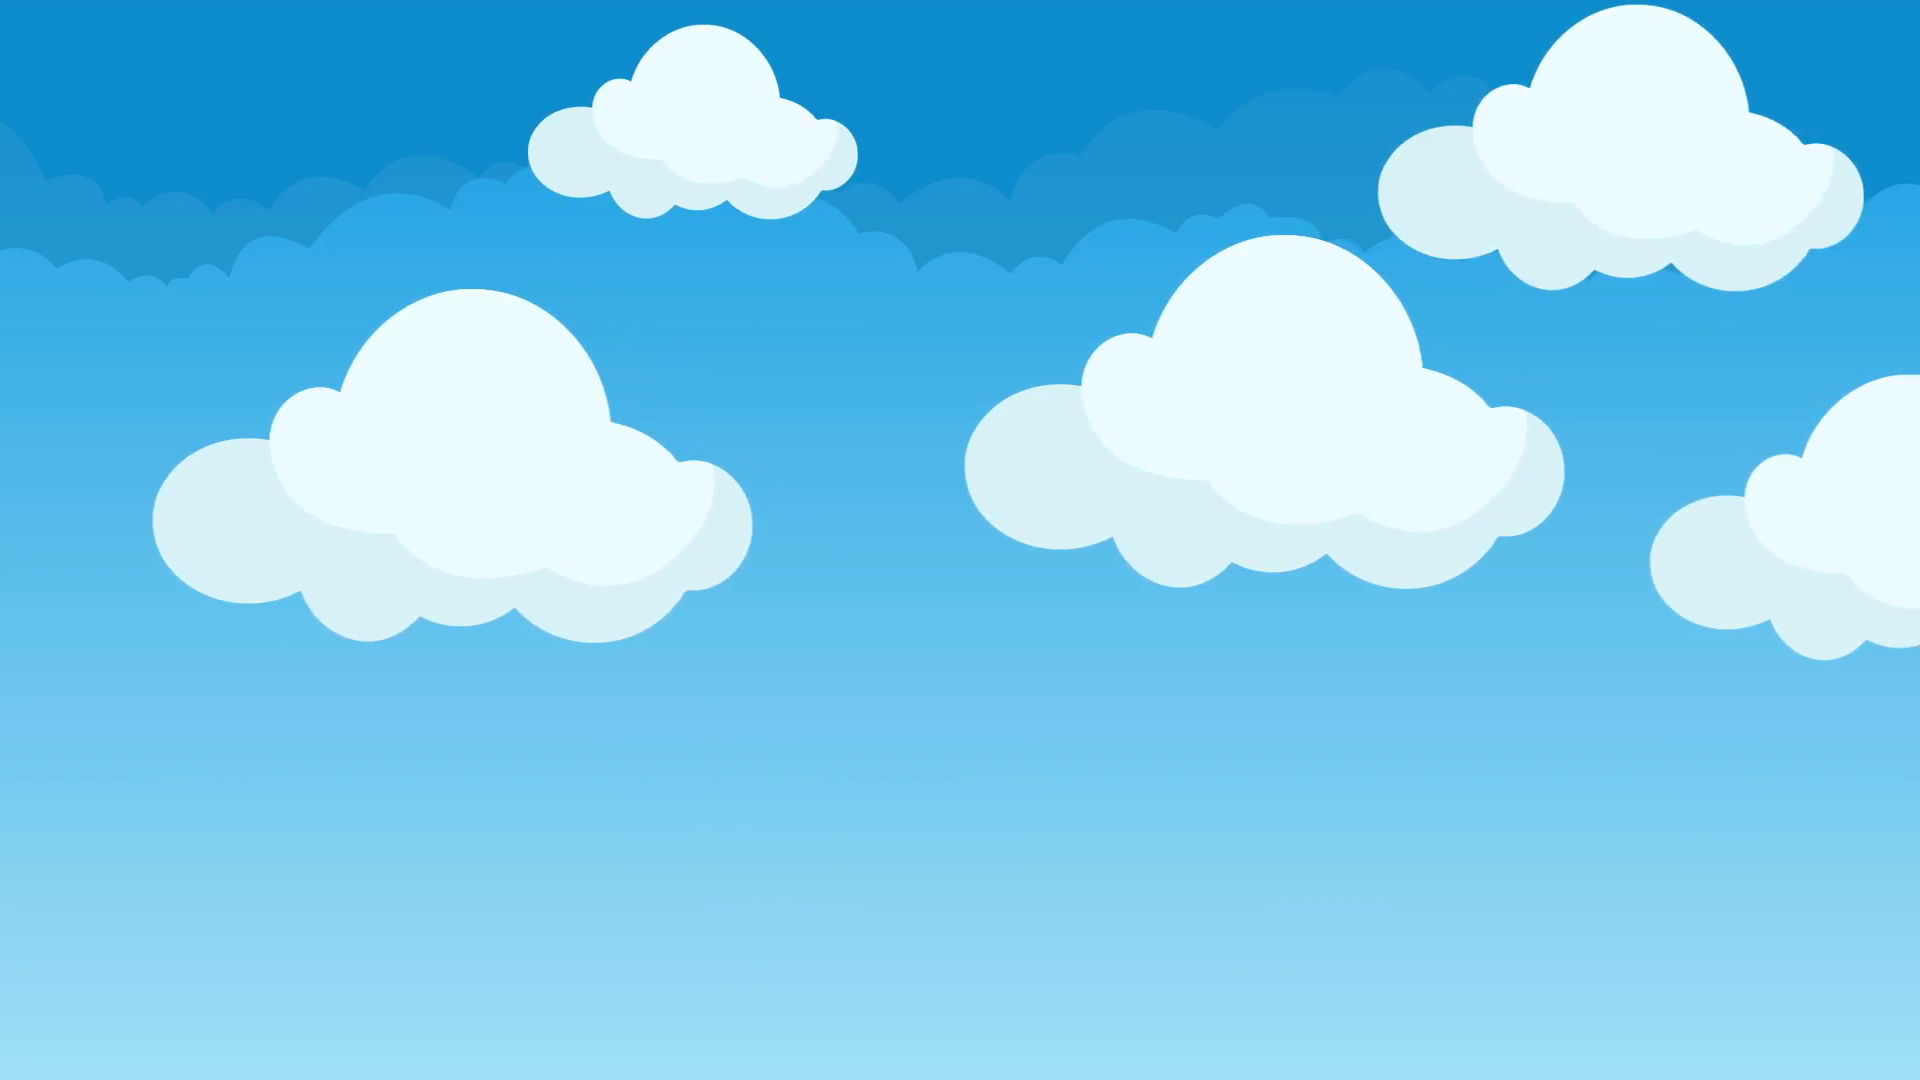 cute-and-puffy-cartoon-clouds-hovering-in-a-blue-sky_rekvphrx__F0000.png